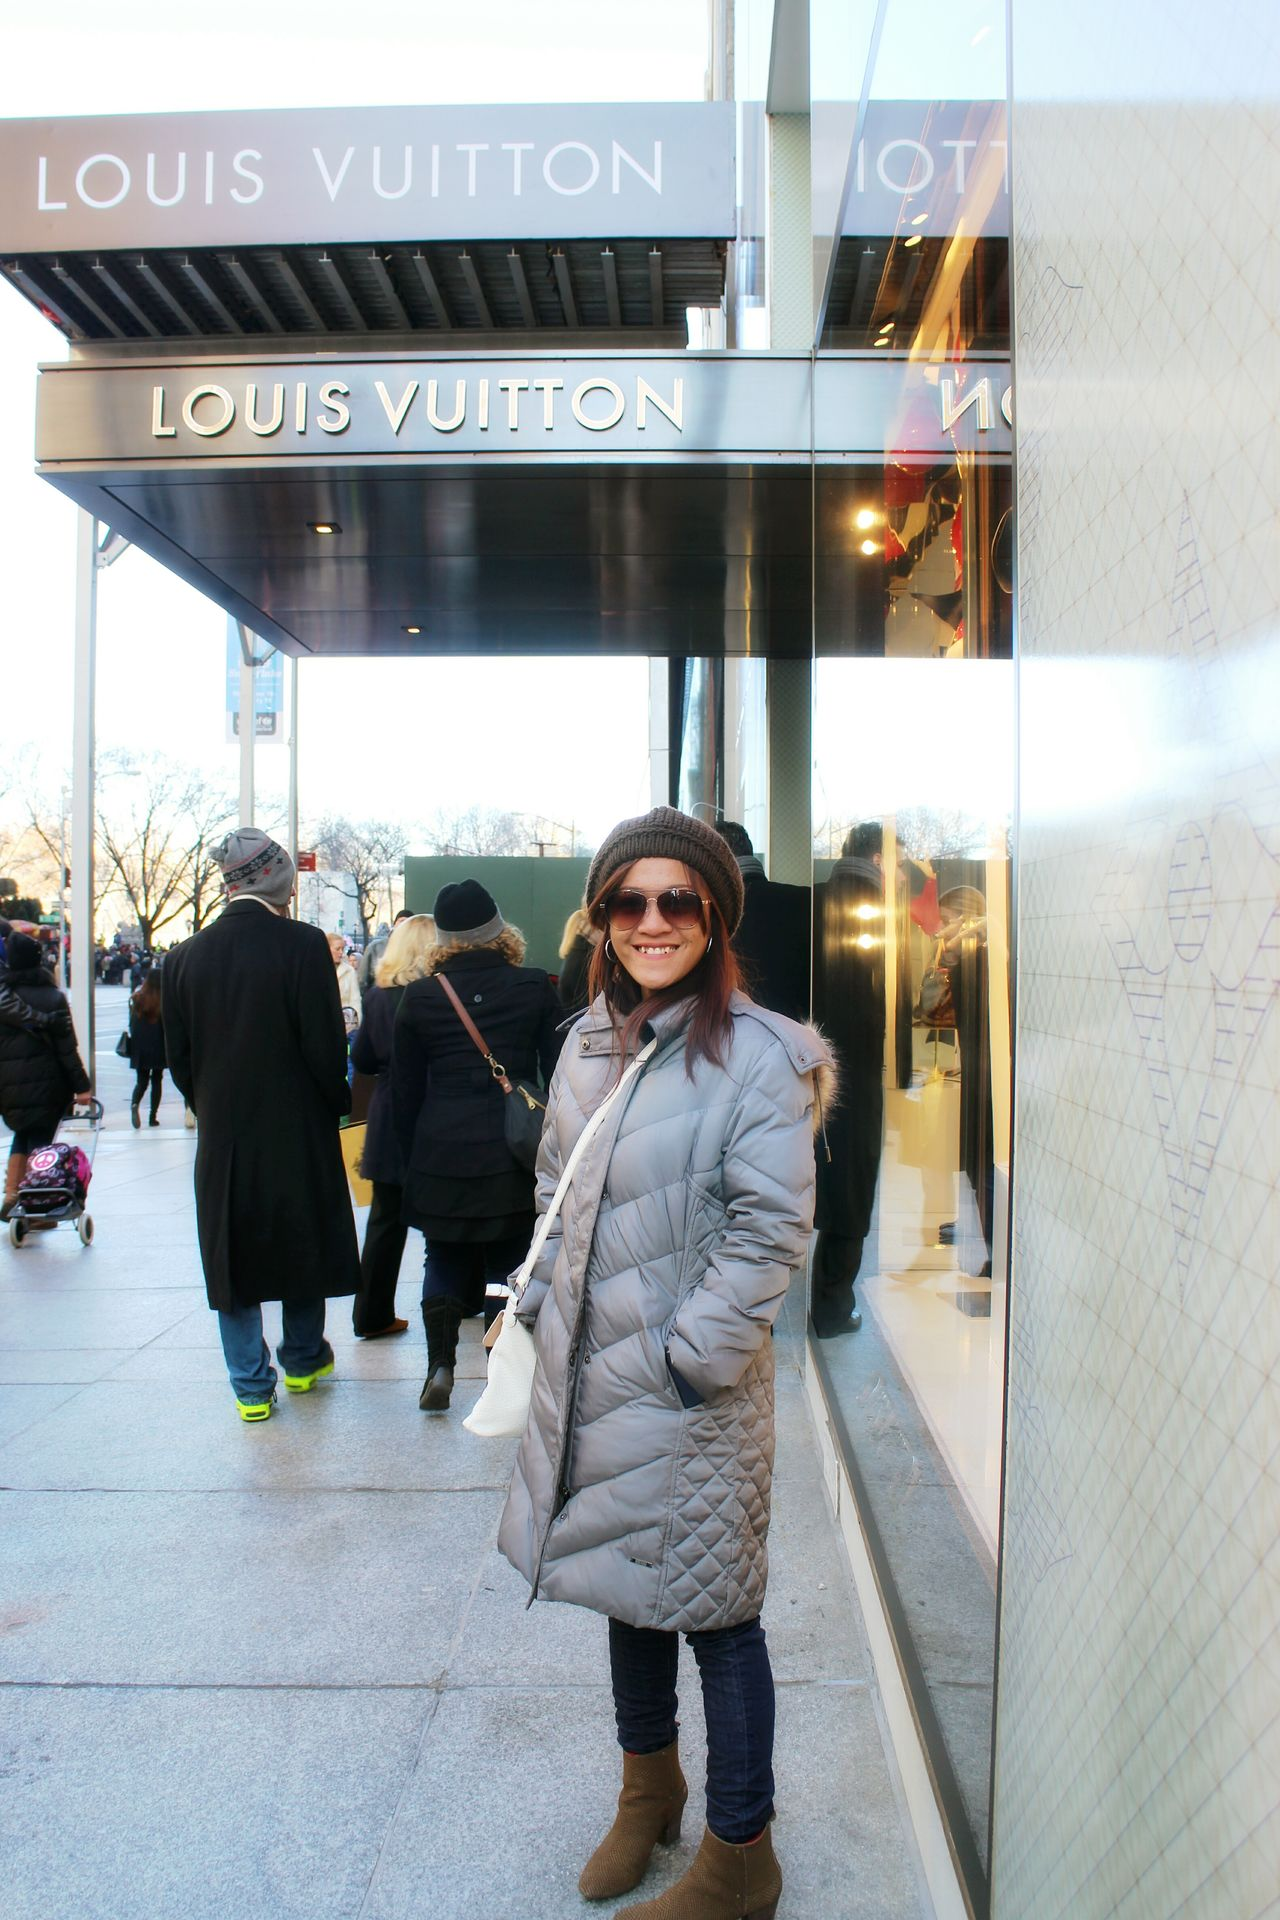 City Life Adults Only Business Finance And Industry Commuter Architecture Warm Clothing People City Travel Traveling The Great Outdoors With Adobe Fun Smile USA Real People Love Luis Vuitton Beautiful One Person